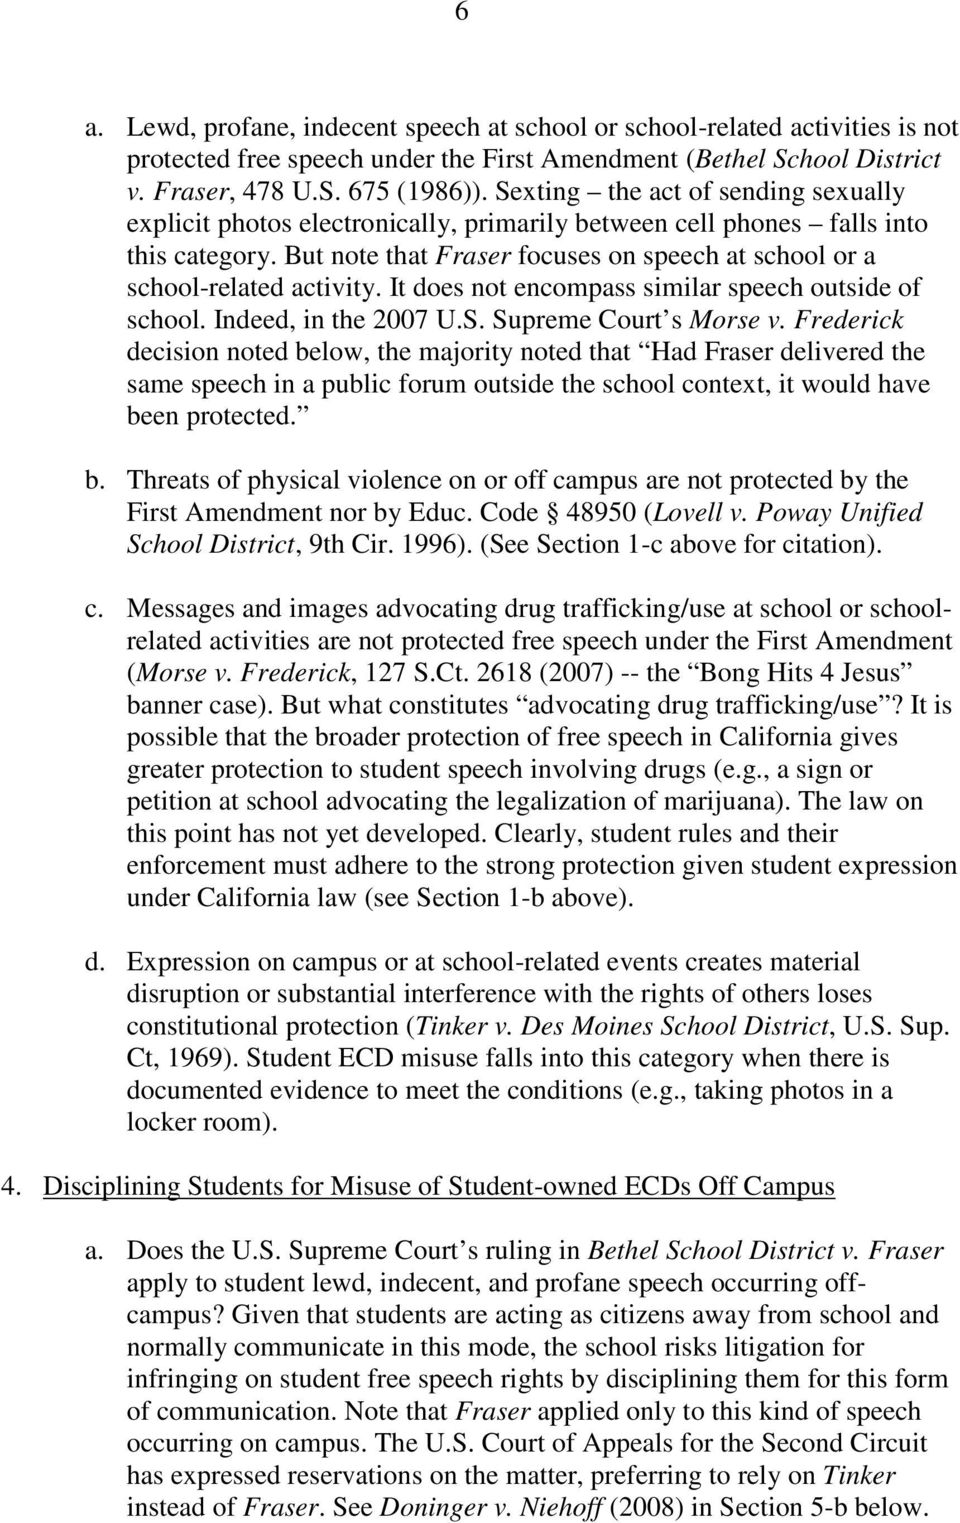 FREE SPEECH AND PRIVACY DIMENSIONS OF STUDENT MISUSE OF